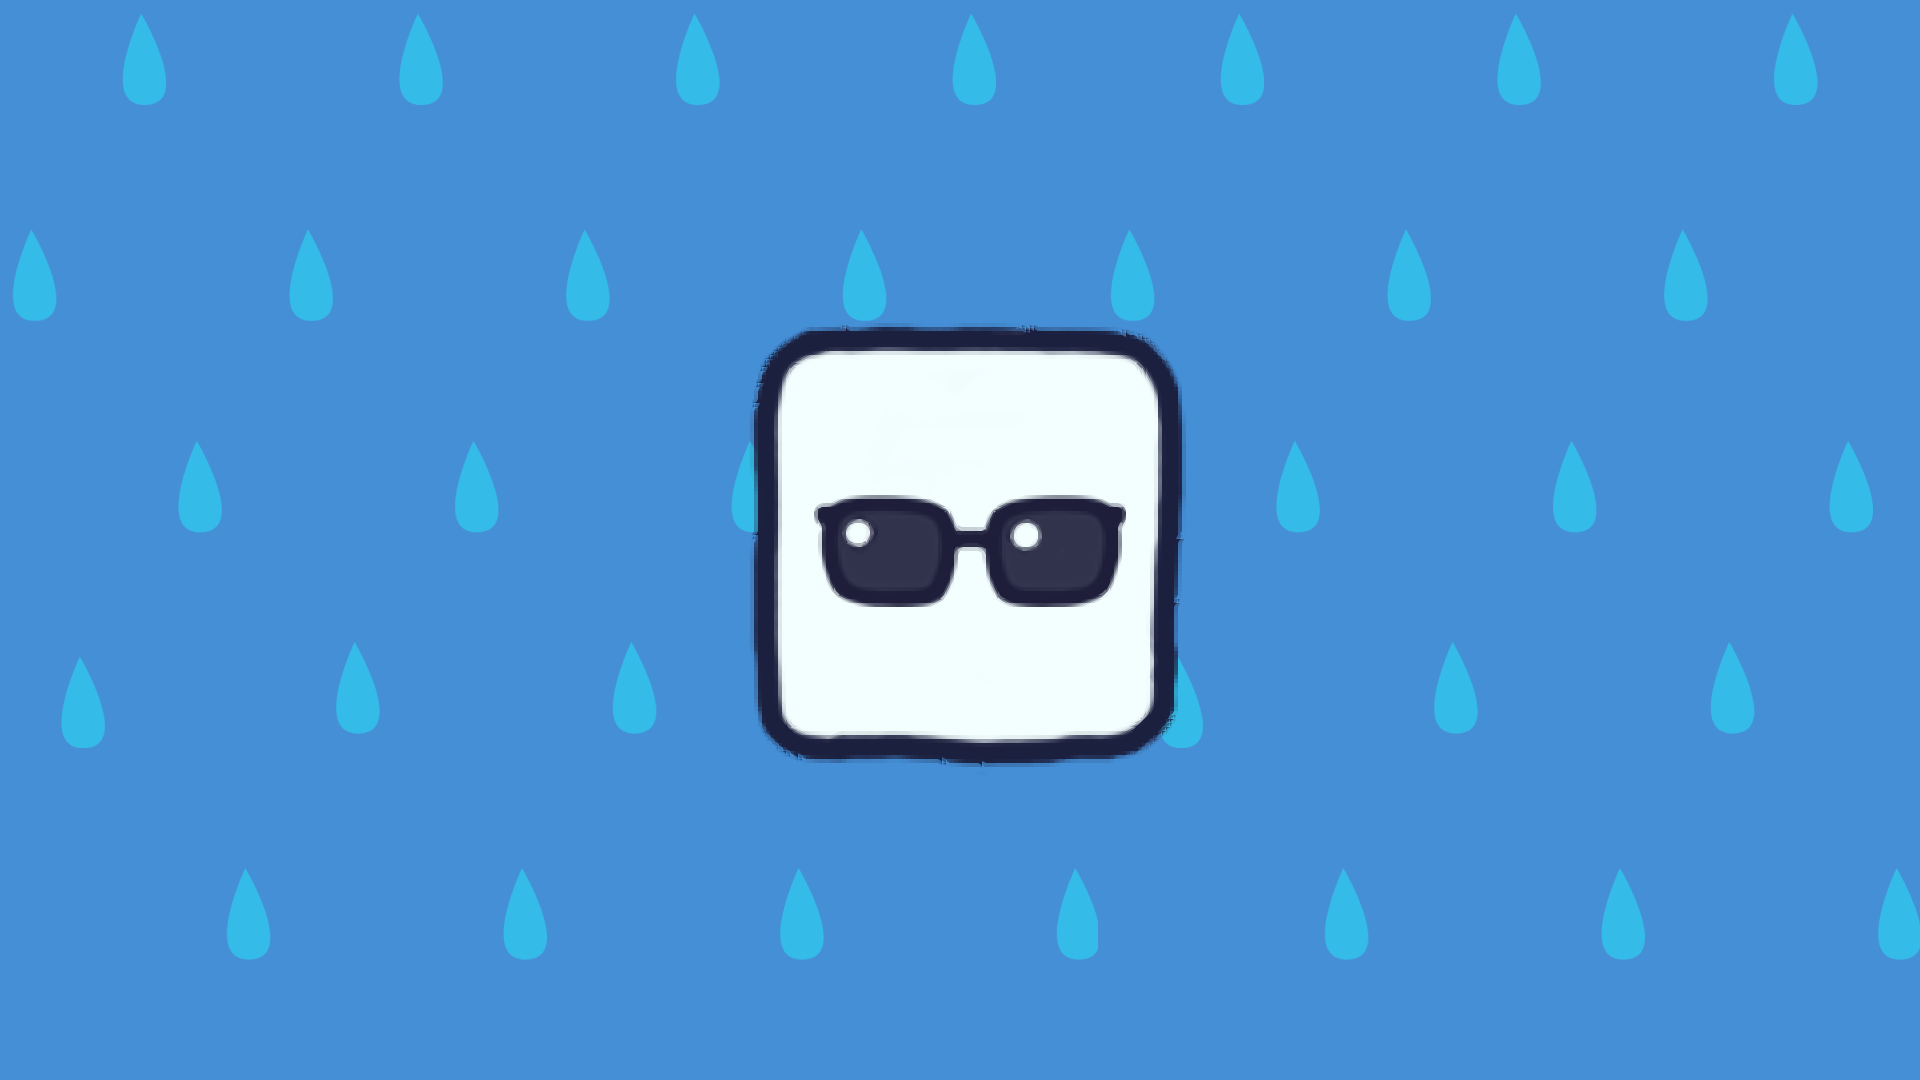 Icon for Stylish Cloud